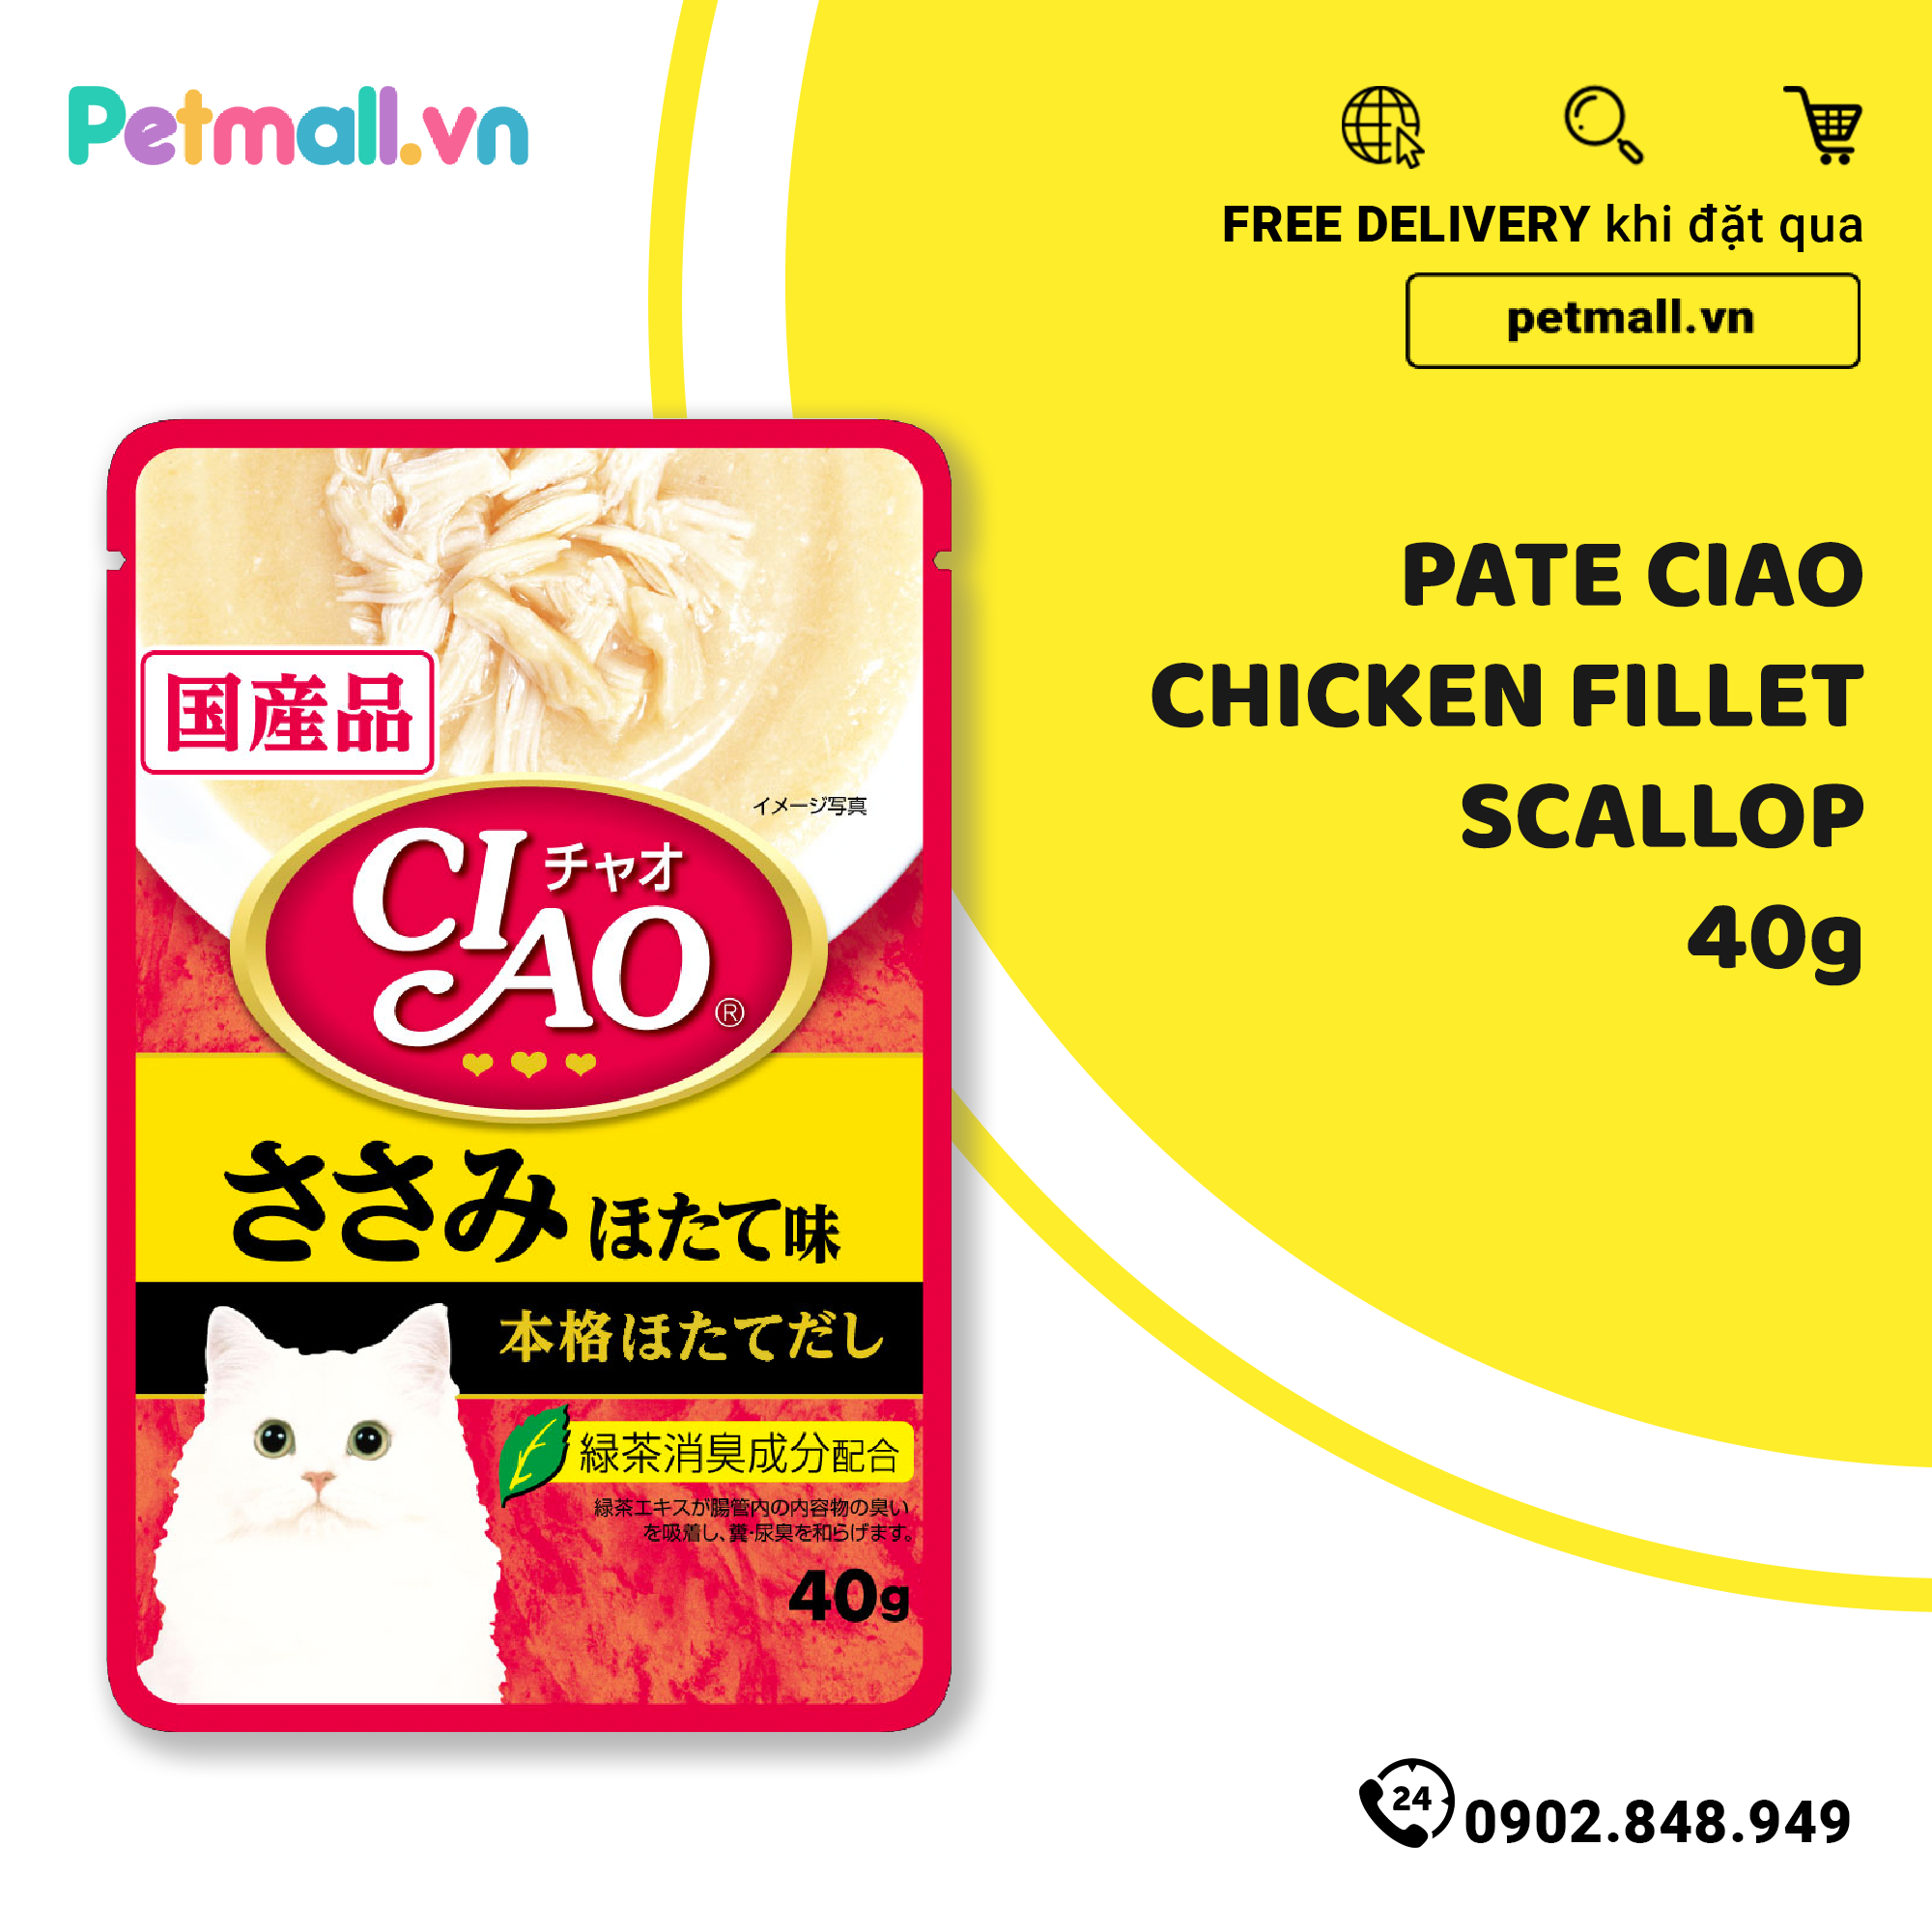 Pate mèo CIAO Chicken Fillet Scallop 40g